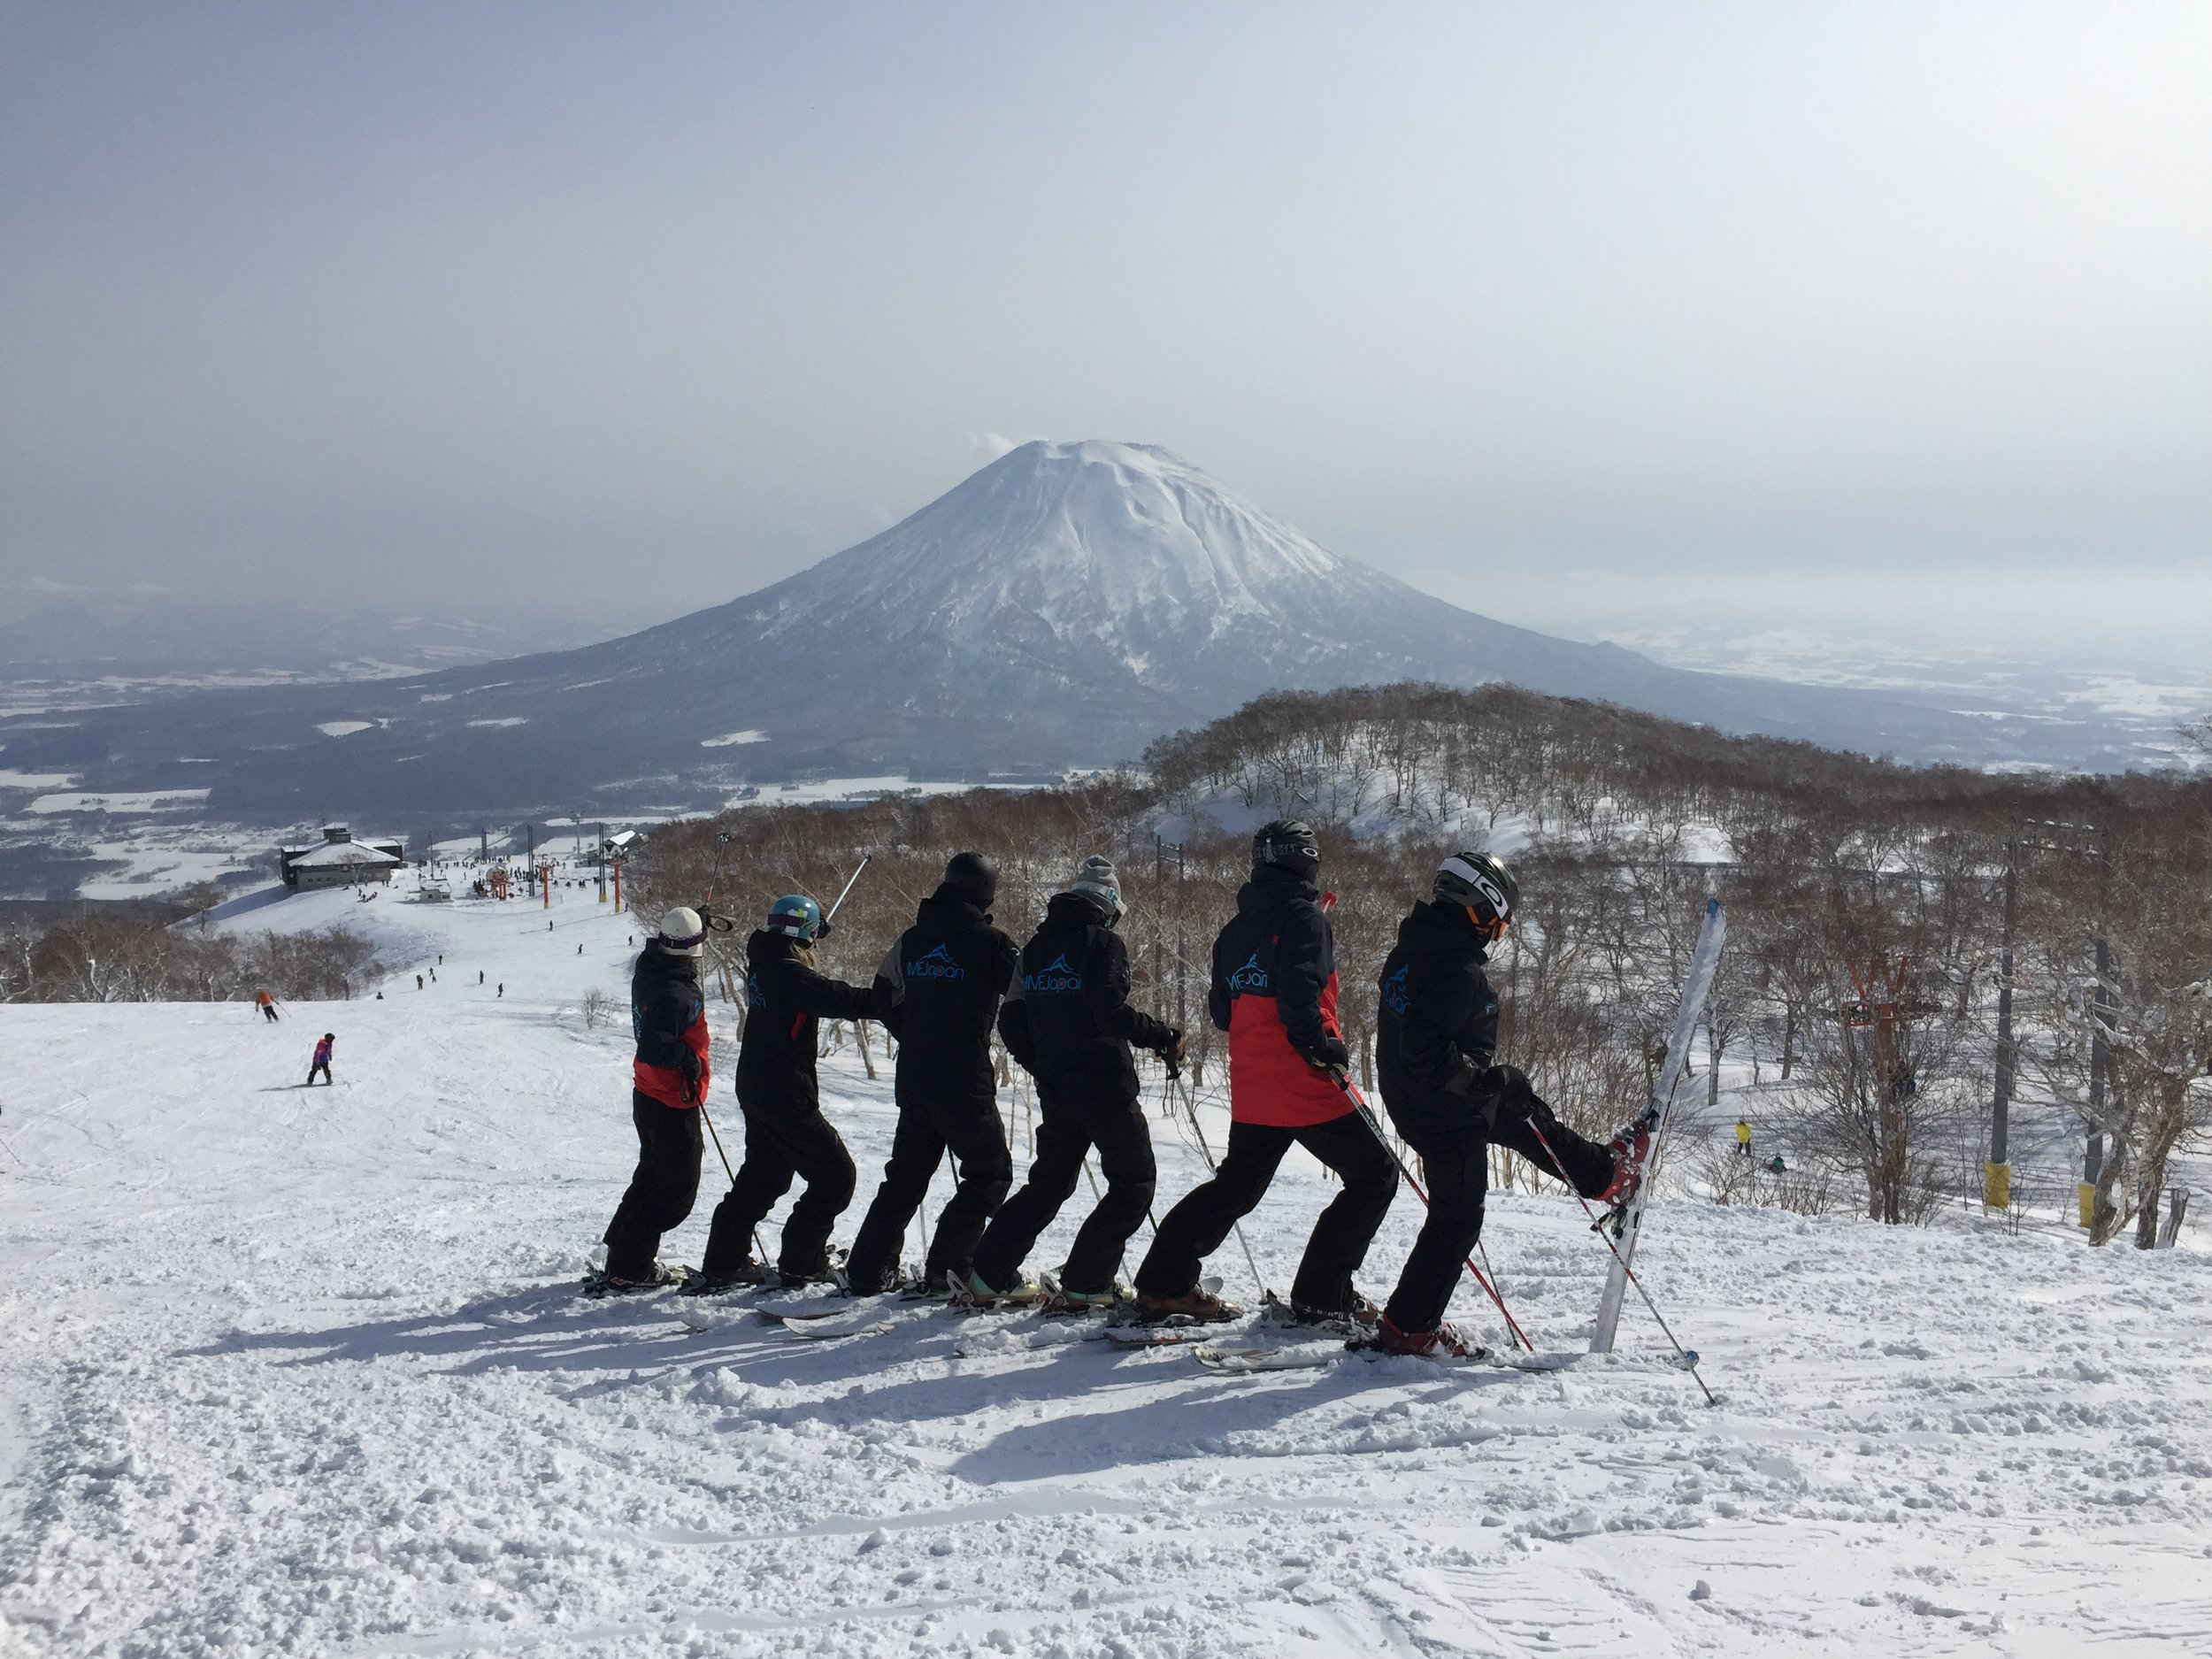 NISEKO-PRIVATE LESSONS - 6HR FULL DAY PRIVATE ¥ 59,000* (¥ 65,000* PEAK)A FULL DAY PRIVATE LESSON 6HRS ON SNOW. ENJOY THE BEST OF NISEKO UNITED WITH THE BEST WITH THE CHOICE OF 3 MEETING AREAS IN HIRAFU OR PICK-UP/DROP-OFF. CHALLENGE YOURSELF WITH NEW SKILLS AND TERRAIN WITH YOUR INSTRUCTOR/GUIDE WORKING WITH YOU TO ACHIEVE YOUR SKI OR SNOWBOARDING GOALS WHATEVER THEY MAY BE.3HR AM PRIVATE ¥35,000*GET OUT EARLY AND ENJOY THE FRESH POWDER OR THE NEWLY GROOMED TERRAIN WHILE HONING YOUR SKILLS.START YOUR DAY FROM 8.30AM-9.30AM. (HIRAFU/ANNUPURI)3HR PM PRIVATE ¥33,000*FOR THE LATE RISER WHO WANTS TO AVOID THE MORNING RUSH AND SHUFFLE. START FROM 1.30PM* (HIRAFU/ANNUPURI)NIGHT LESSON 2HR 5PM ¥25,000* (HIRAFU ONLY)2HR PRIVATE LESSON ¥25,000* (HIRAFU ONLY)1-4 PERSONS AVAILABLE. FOR THE OFF-PEAK SEASON IN HIRAFU.BOOK 5 CONSECUTIVE DAYS FOR ¥85,000*1-15 DEC 2019, 10 -20 JAN 2020, 20 FEB - 6 MAY 2020TIMES: 9AM, 11AM & 2PM